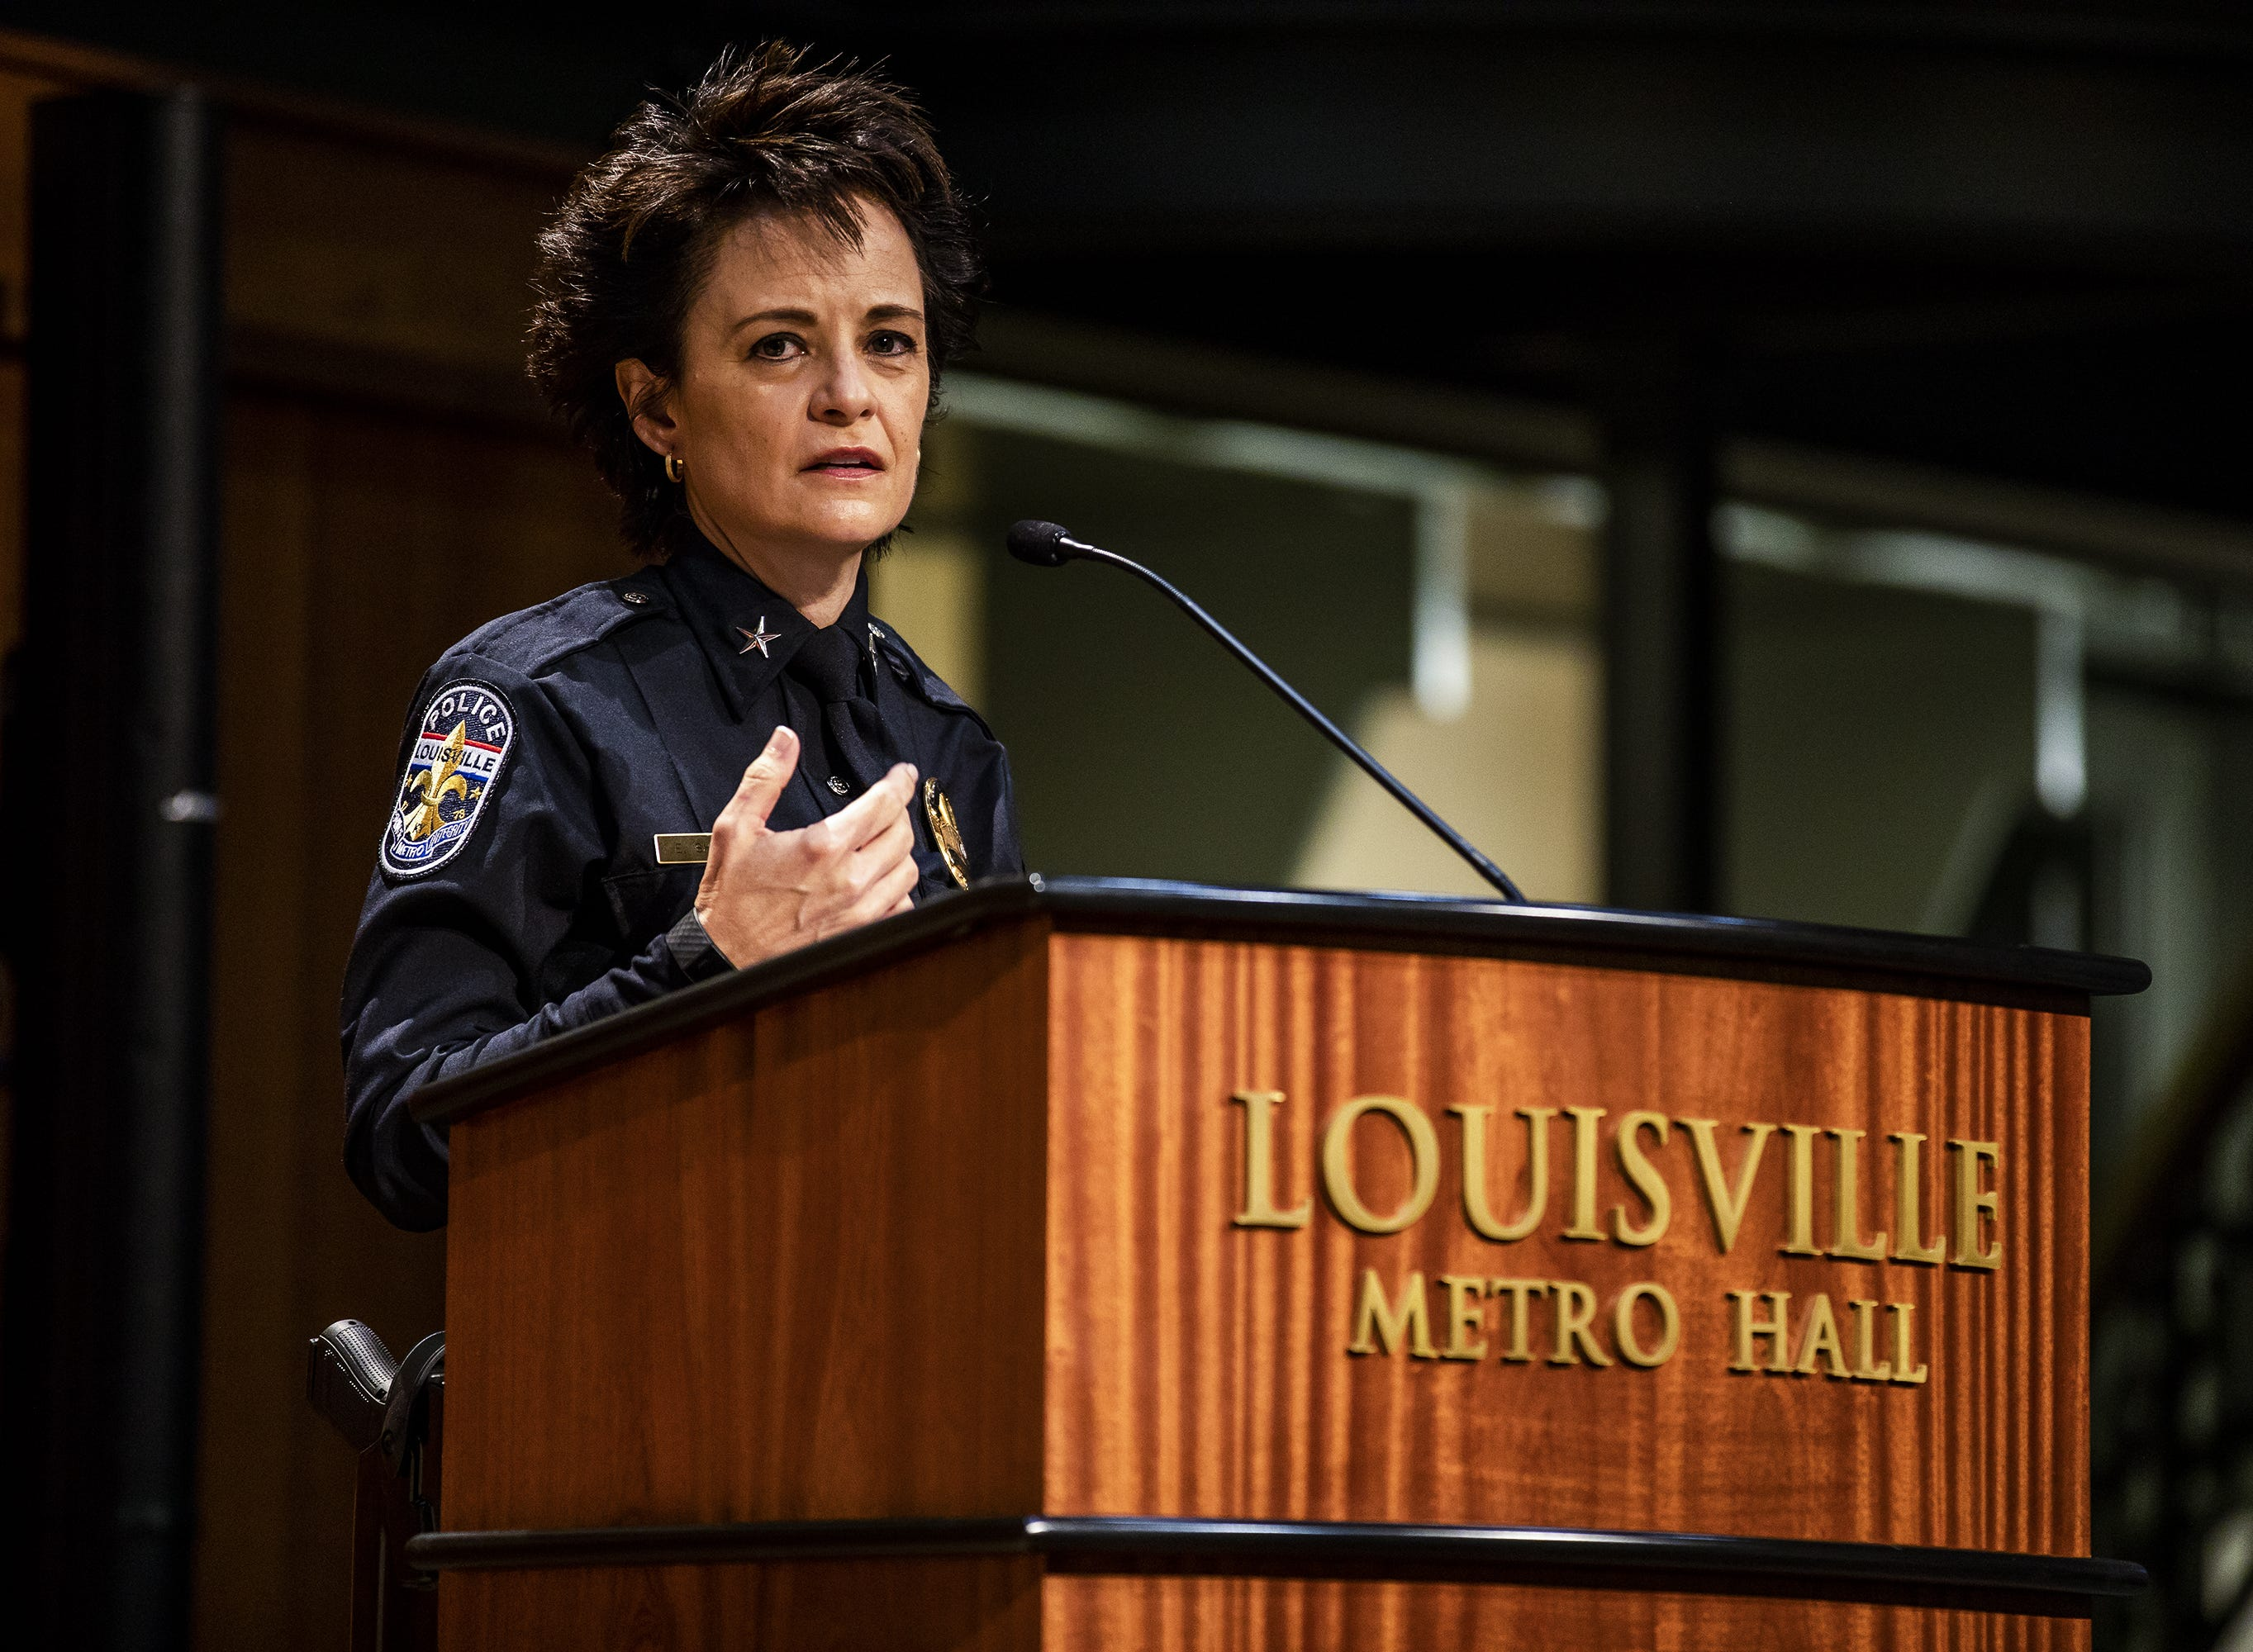 """Chief Erika Shields made some brief comments after being sworn-in as the new LMPD police chief, saying """"I believe in the people here and I believe in the community."""""""